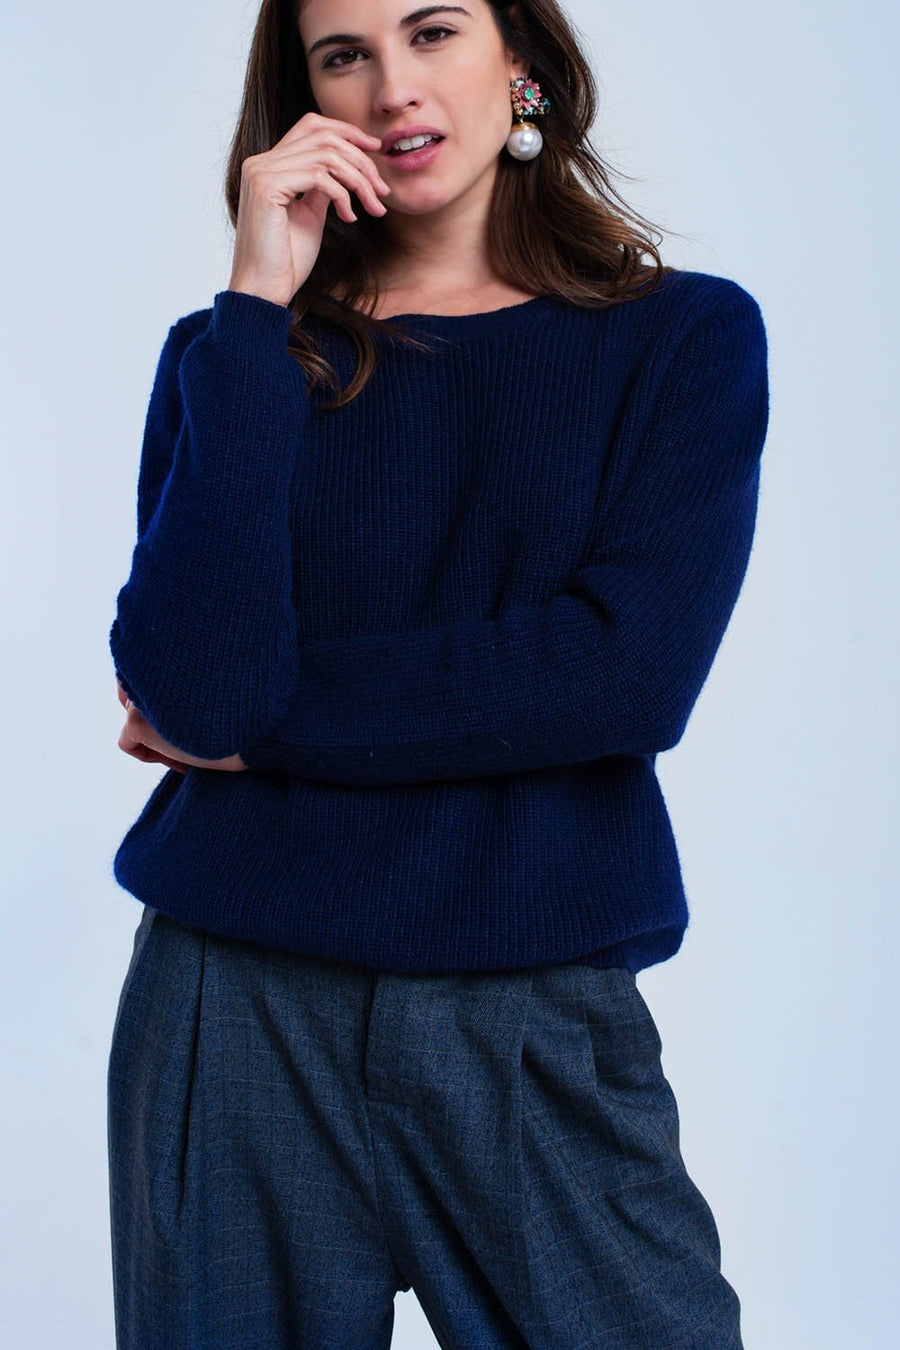 Navy sweater with black ribbons Women - Apparel - Sweaters Cardigans and Tops Tigerlily and Me